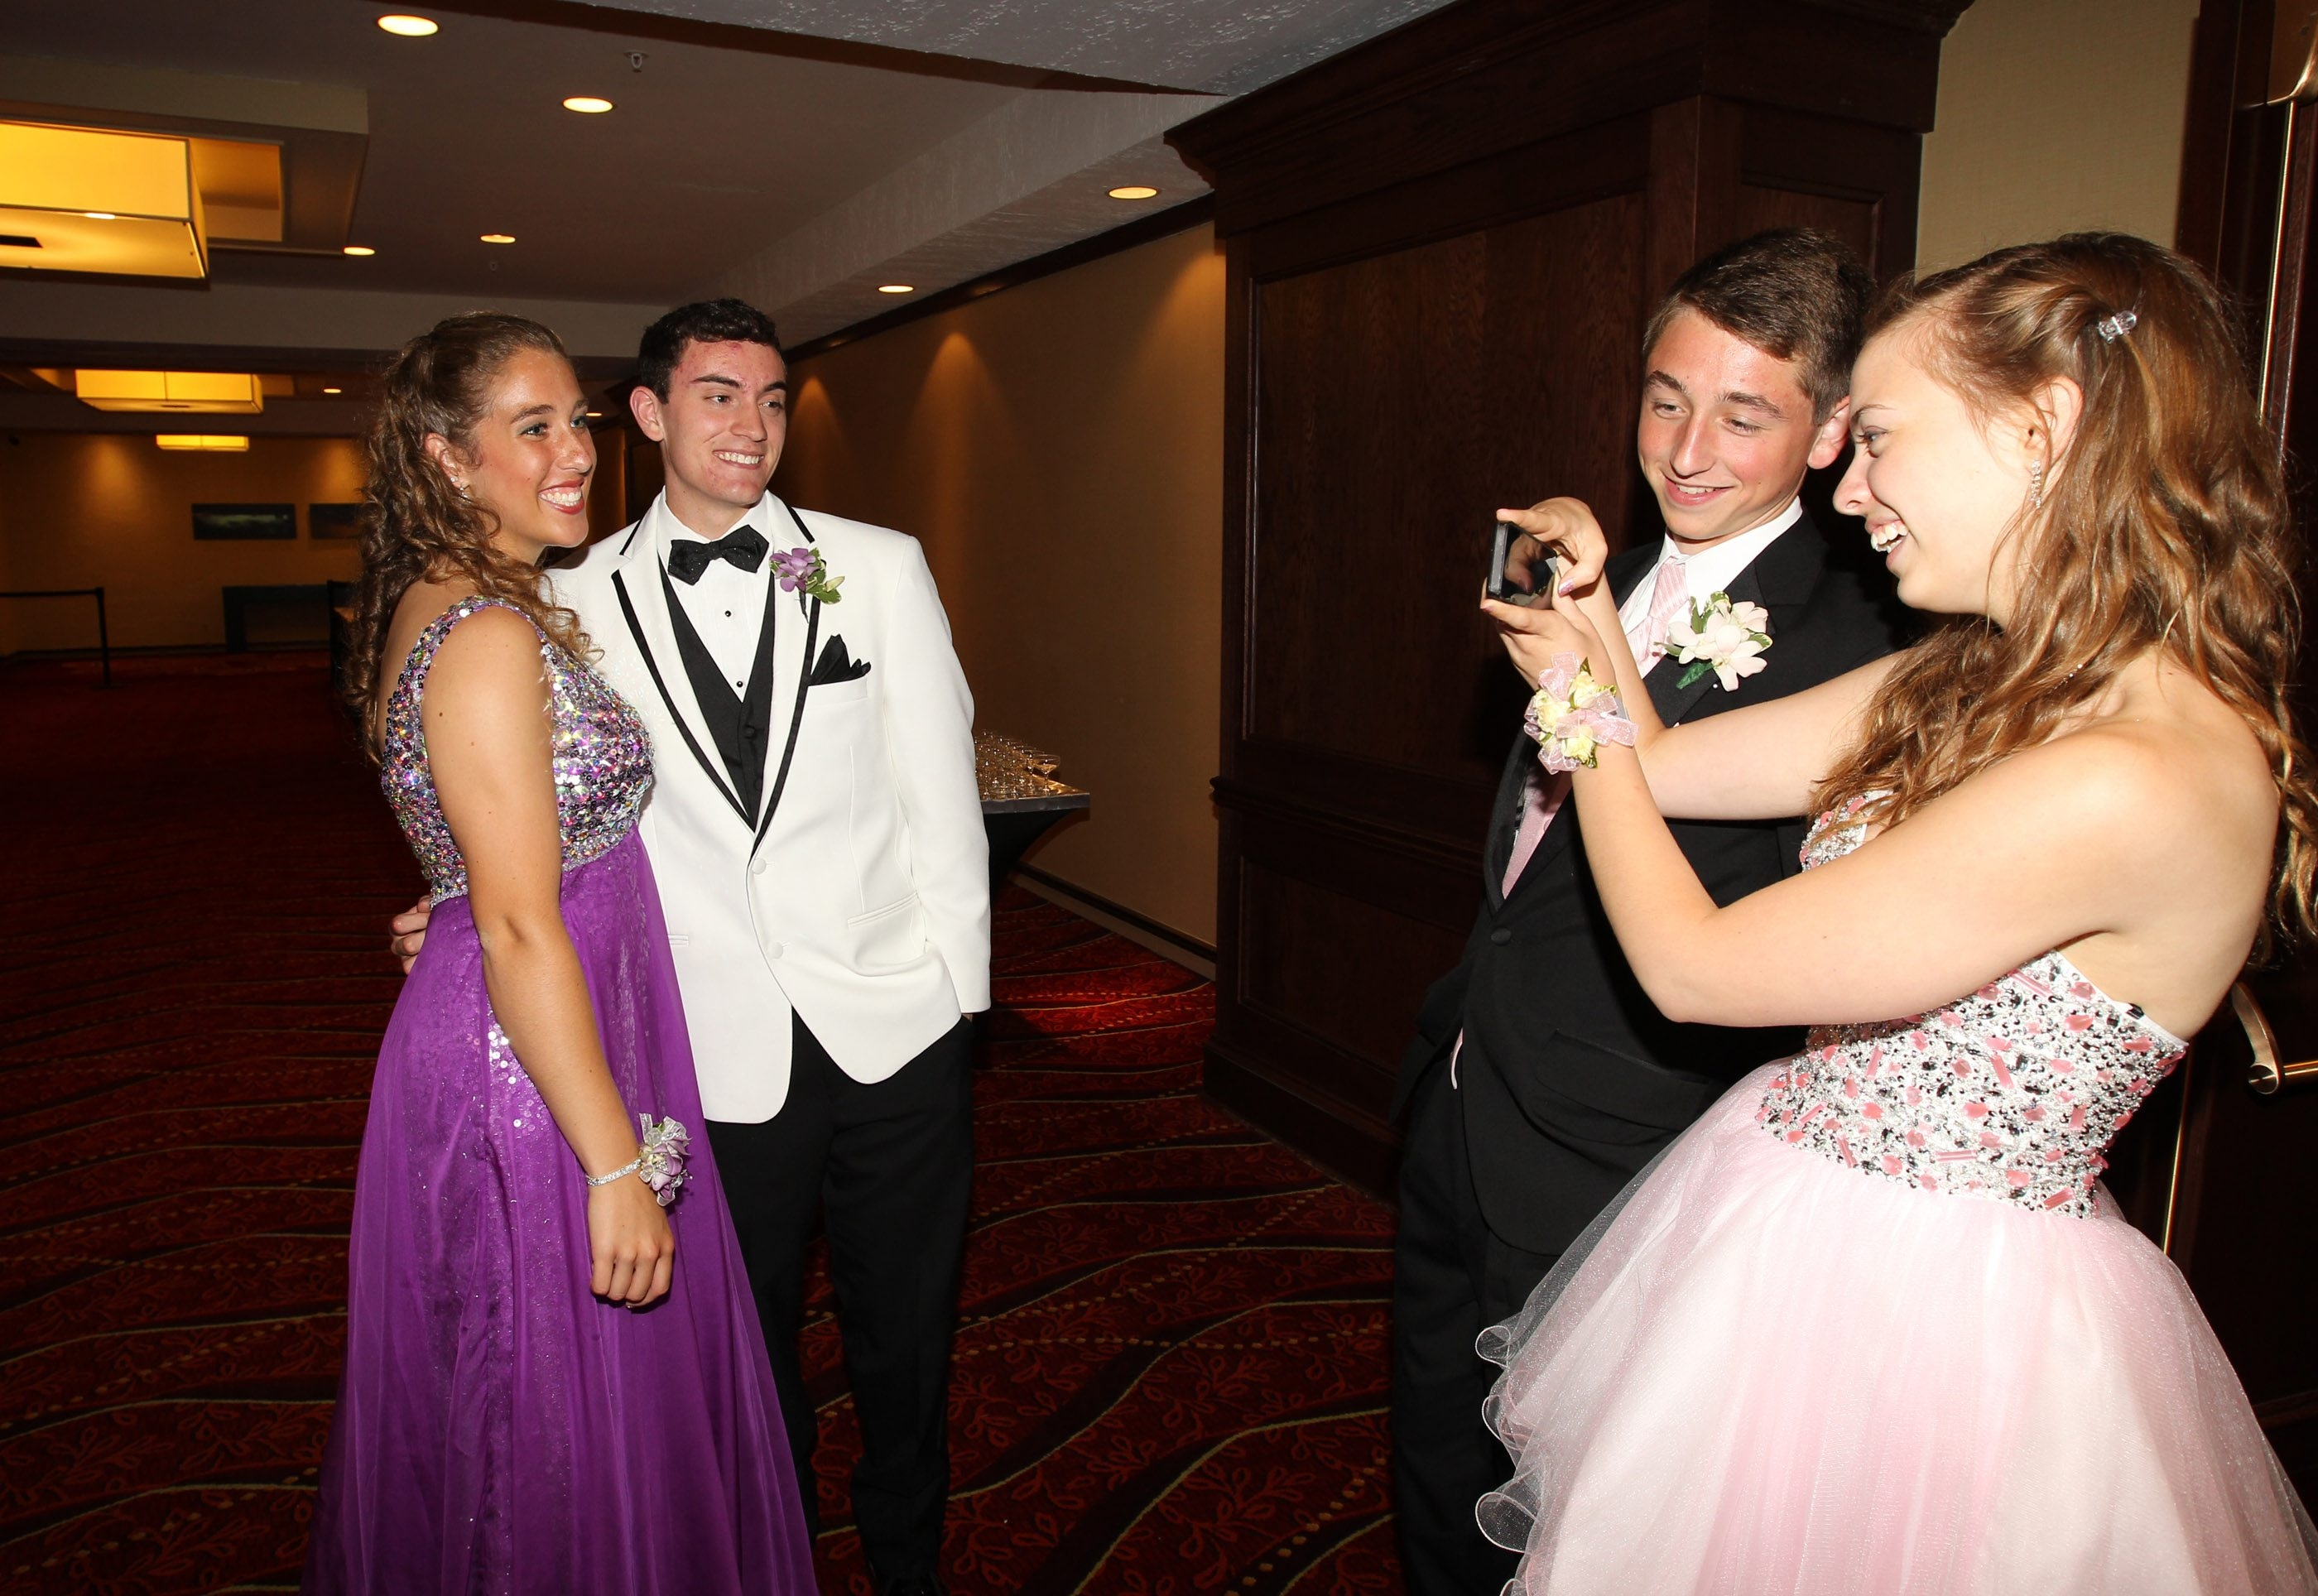 Katrina Buczkowski and Skyler Reinhardt  have their photo taken by Emily Schupbach and Alex Tryjankowski. They were enjoying their senior  prom before she had to leave early to travel to Glens Falls  for today's state softball championship at 9 a.m.